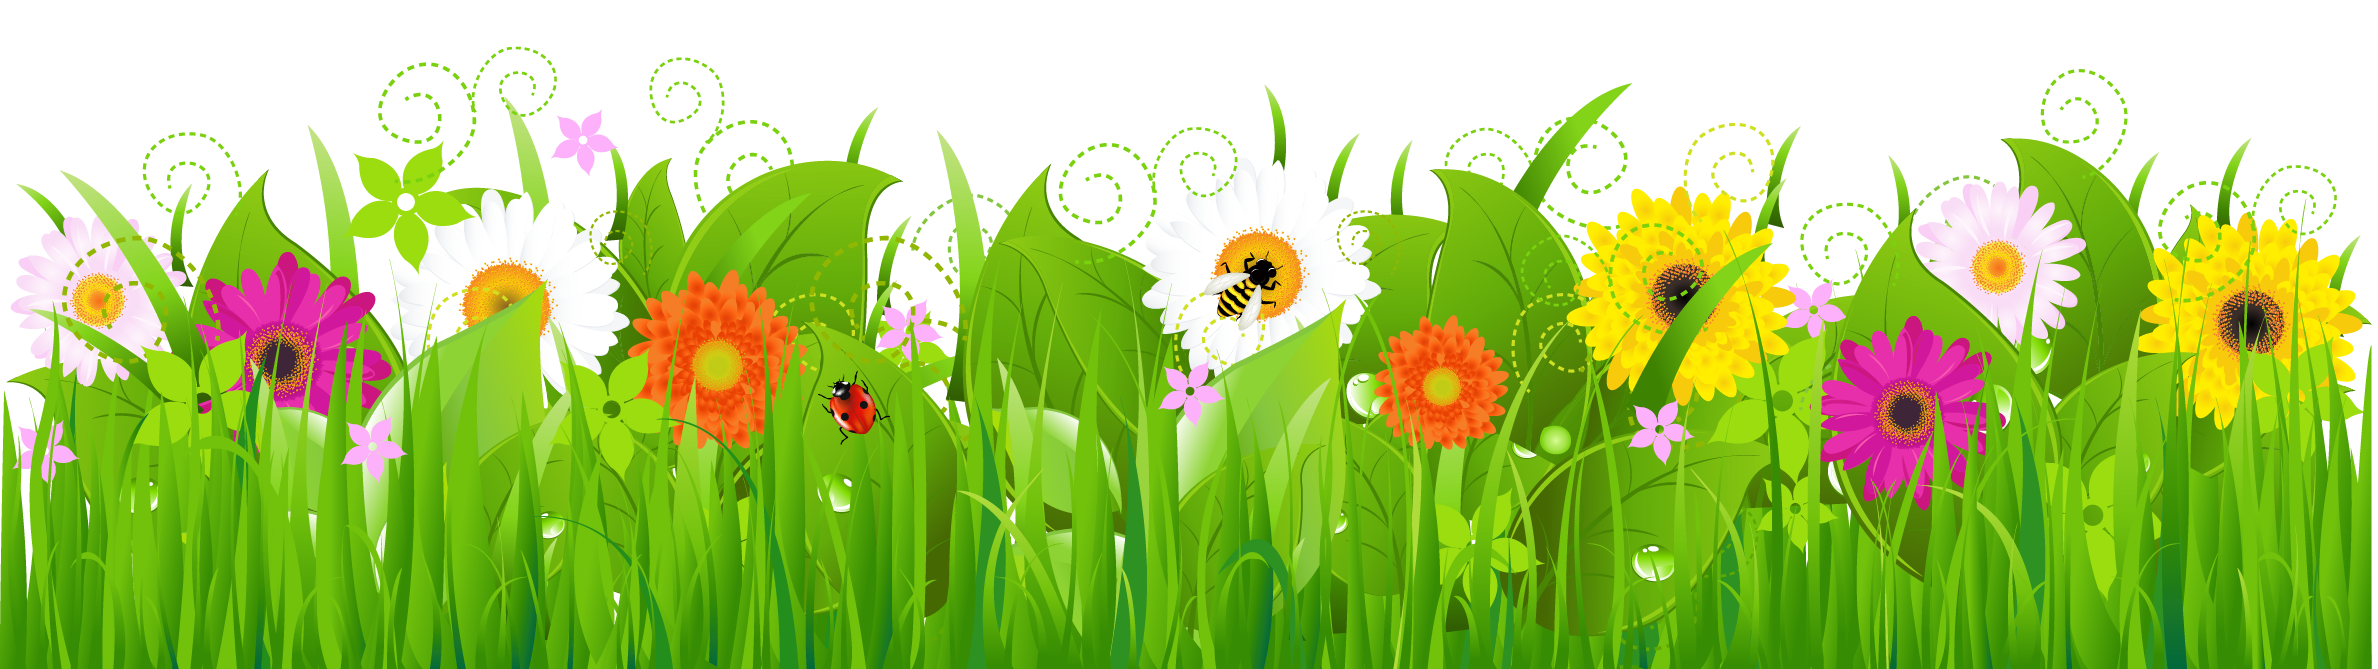 clip art grass clipart cliparts for you clipartix 2 | diversos